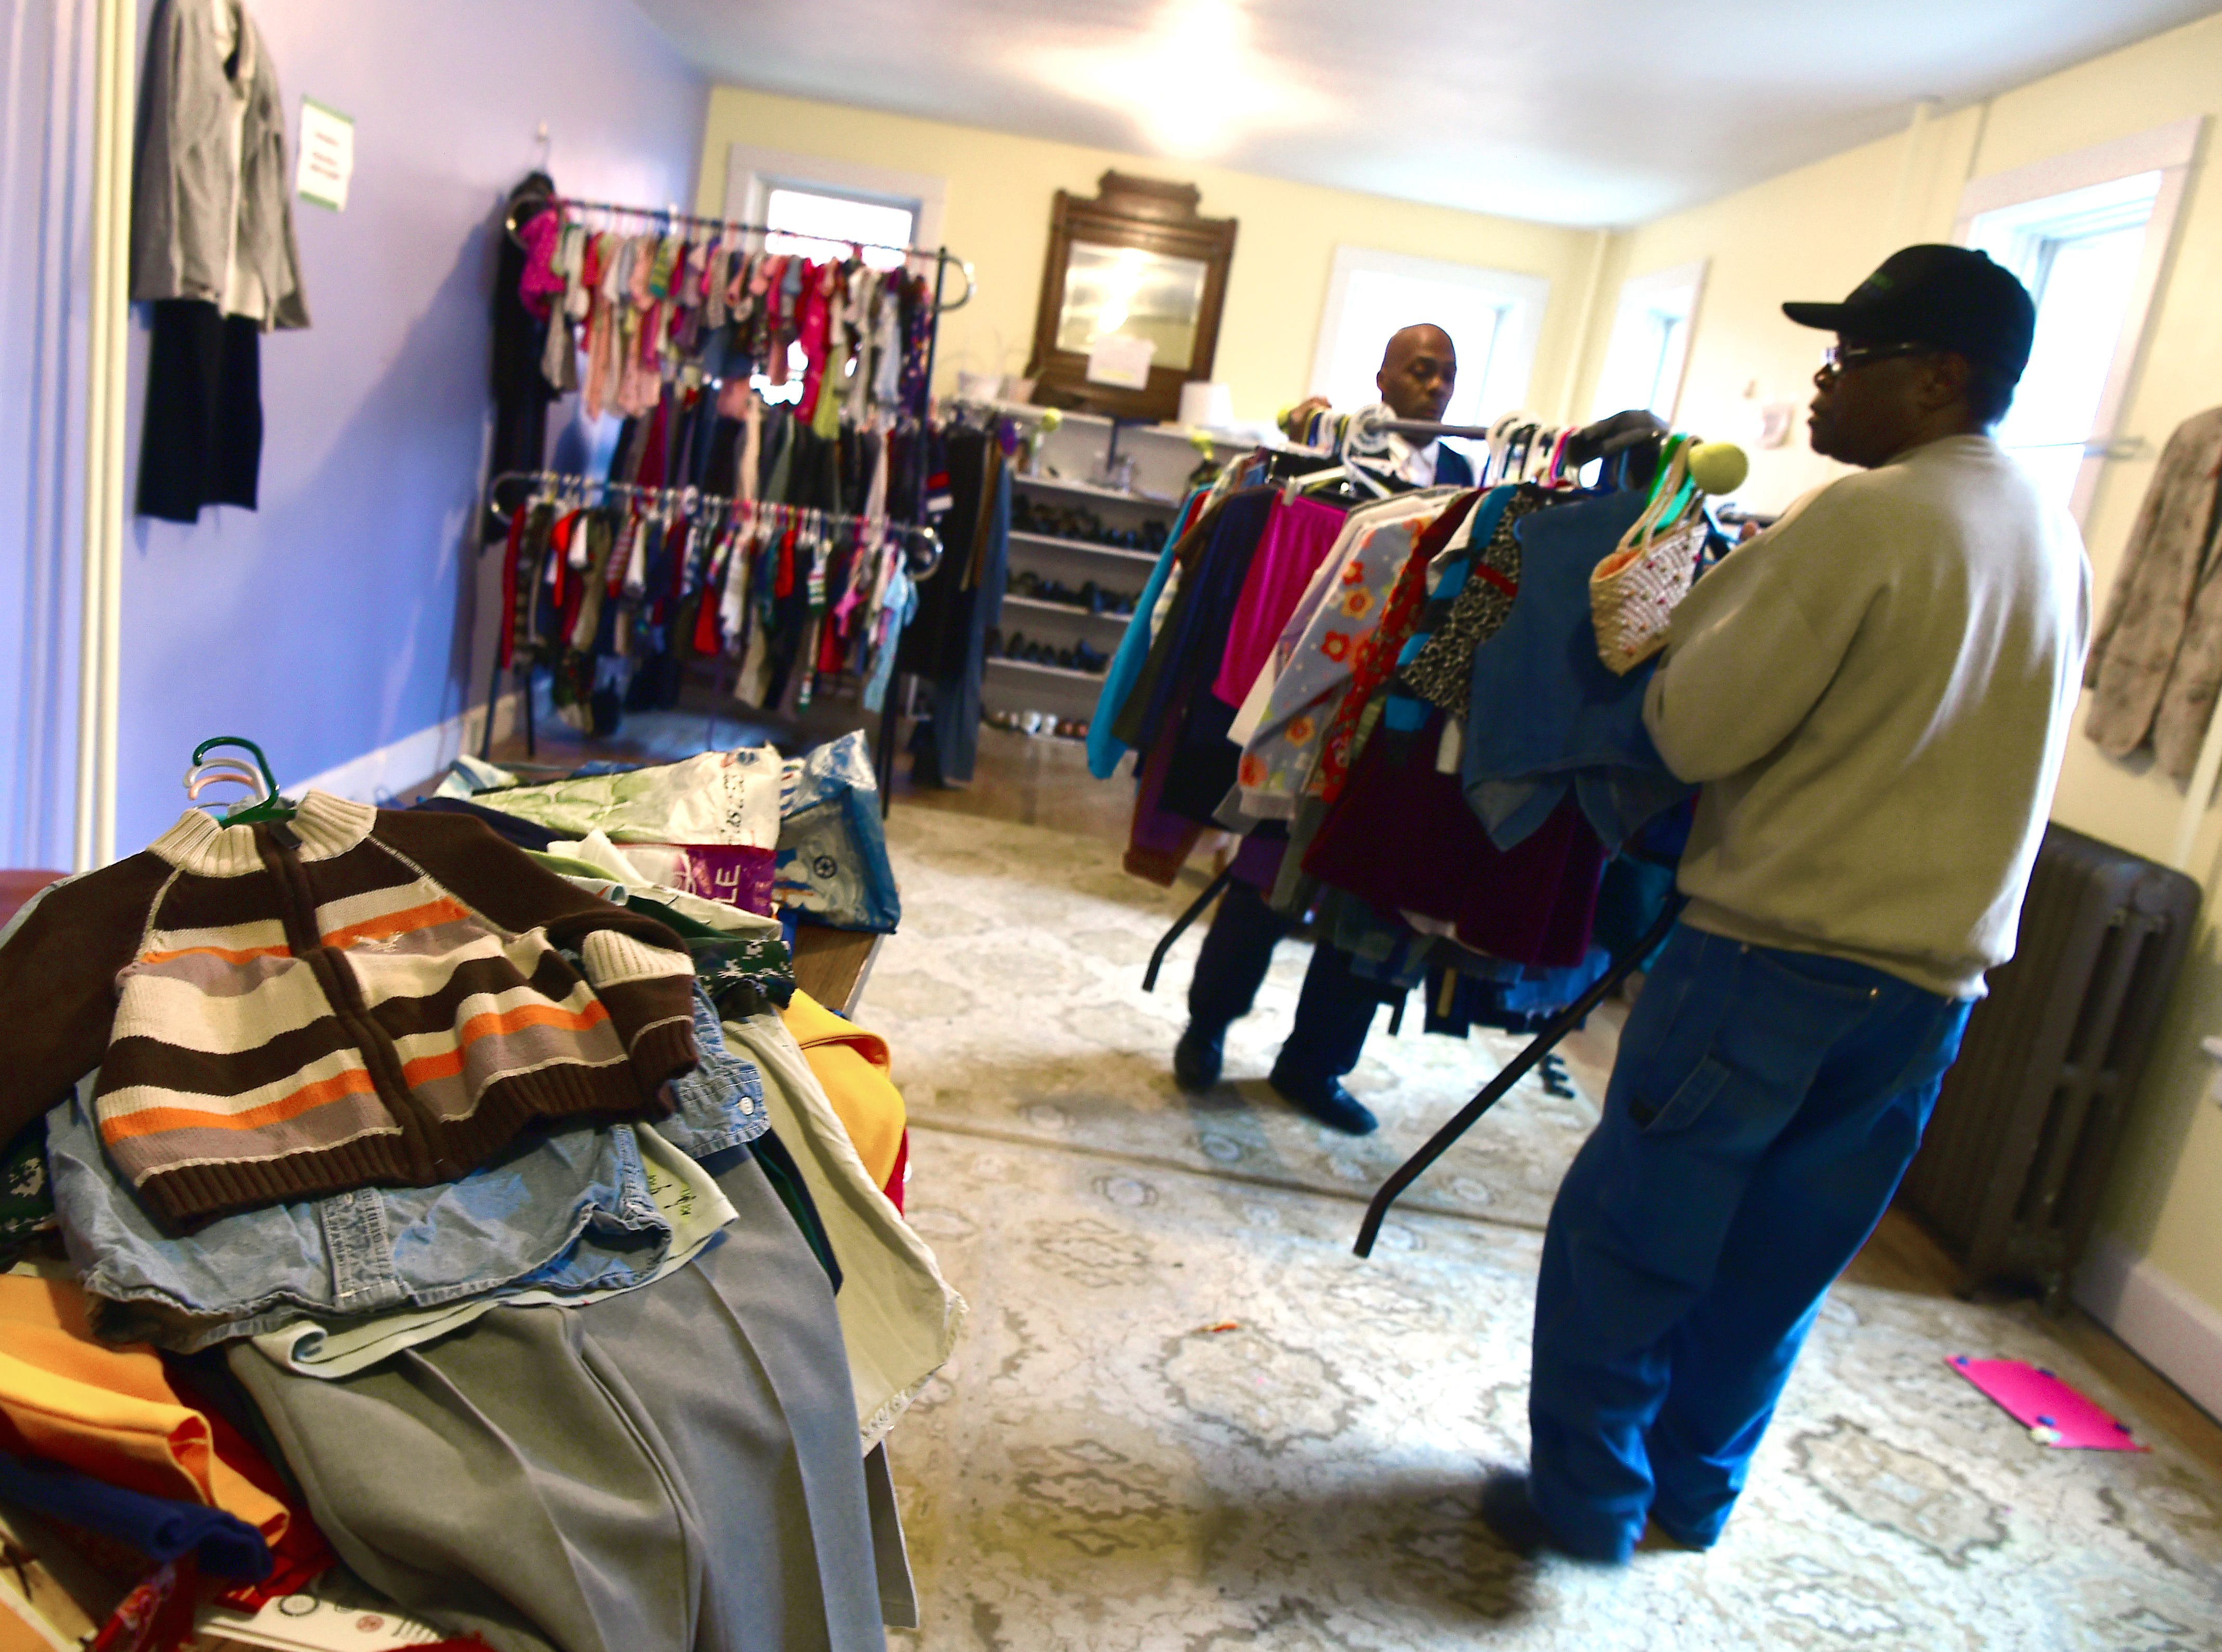 Emmanuel McBean, foreground, and Alex Williams, in back, move racks of clothes as Catholic Charities of Tompkins/Tioga staff and volunteers work at readying winter clothing donations in Ithaca on Thursday, November 29, 2018.